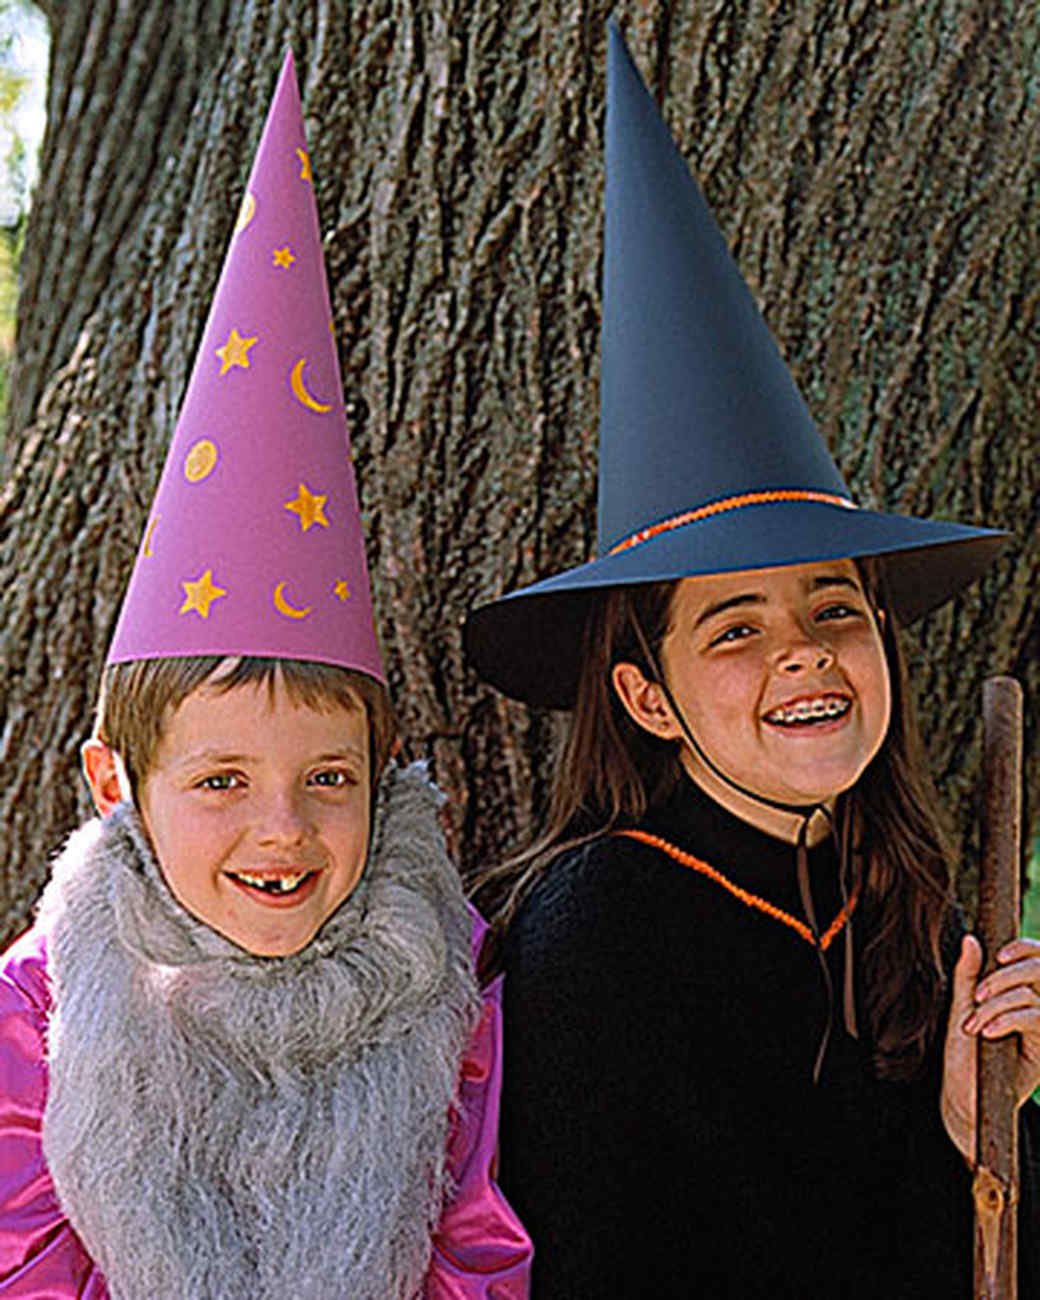 halloween_witches_hat.jpg